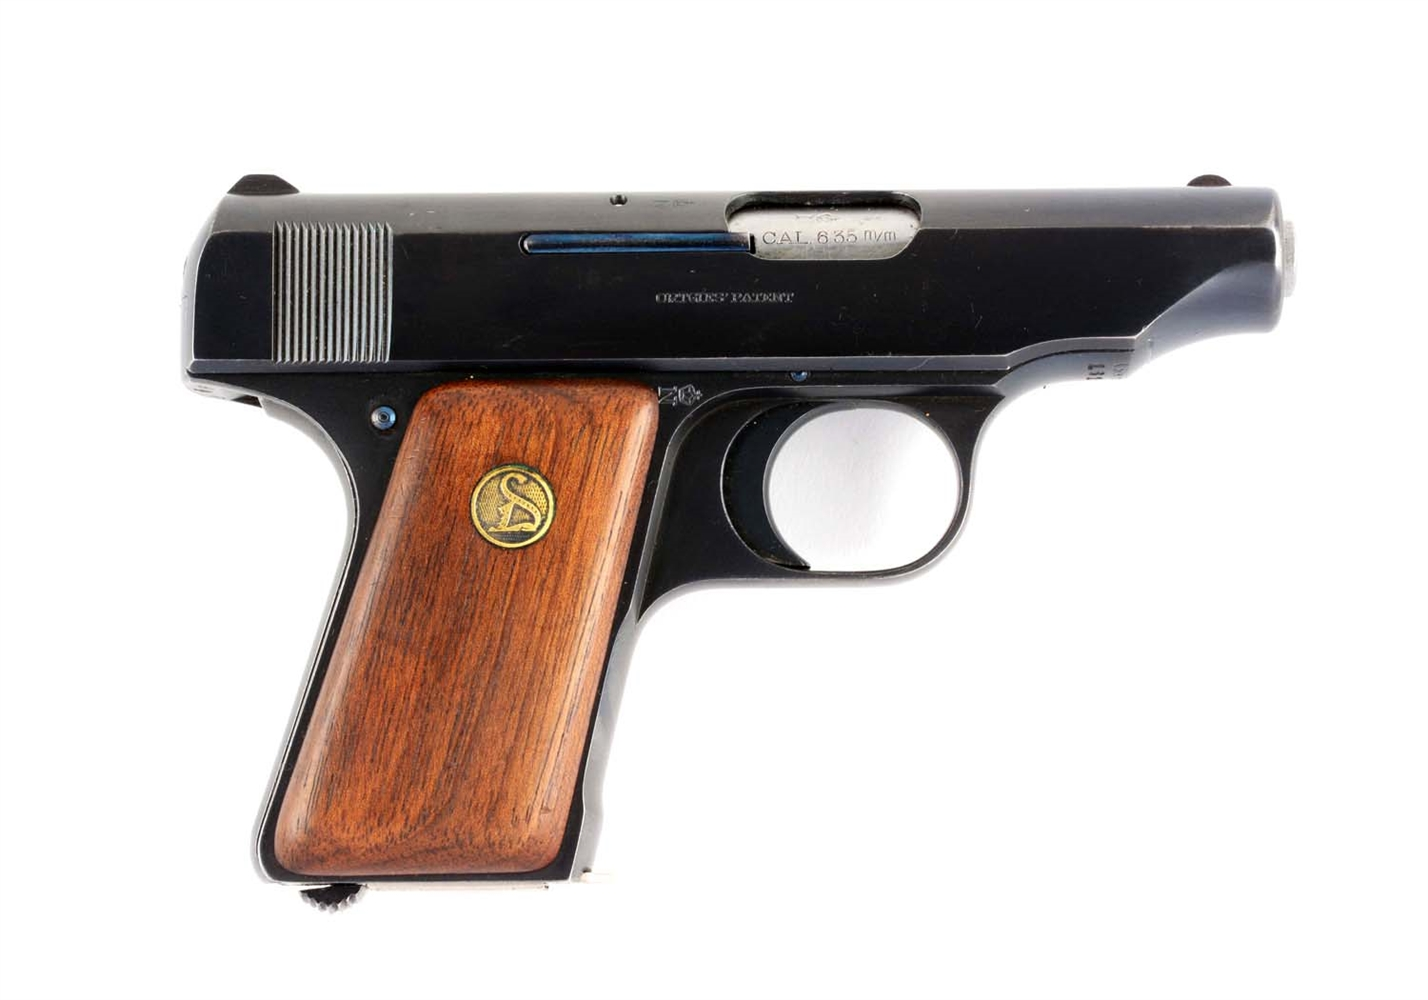 (C) Ortgies 6.35 German Semi-Automatic Pocket Pistol.